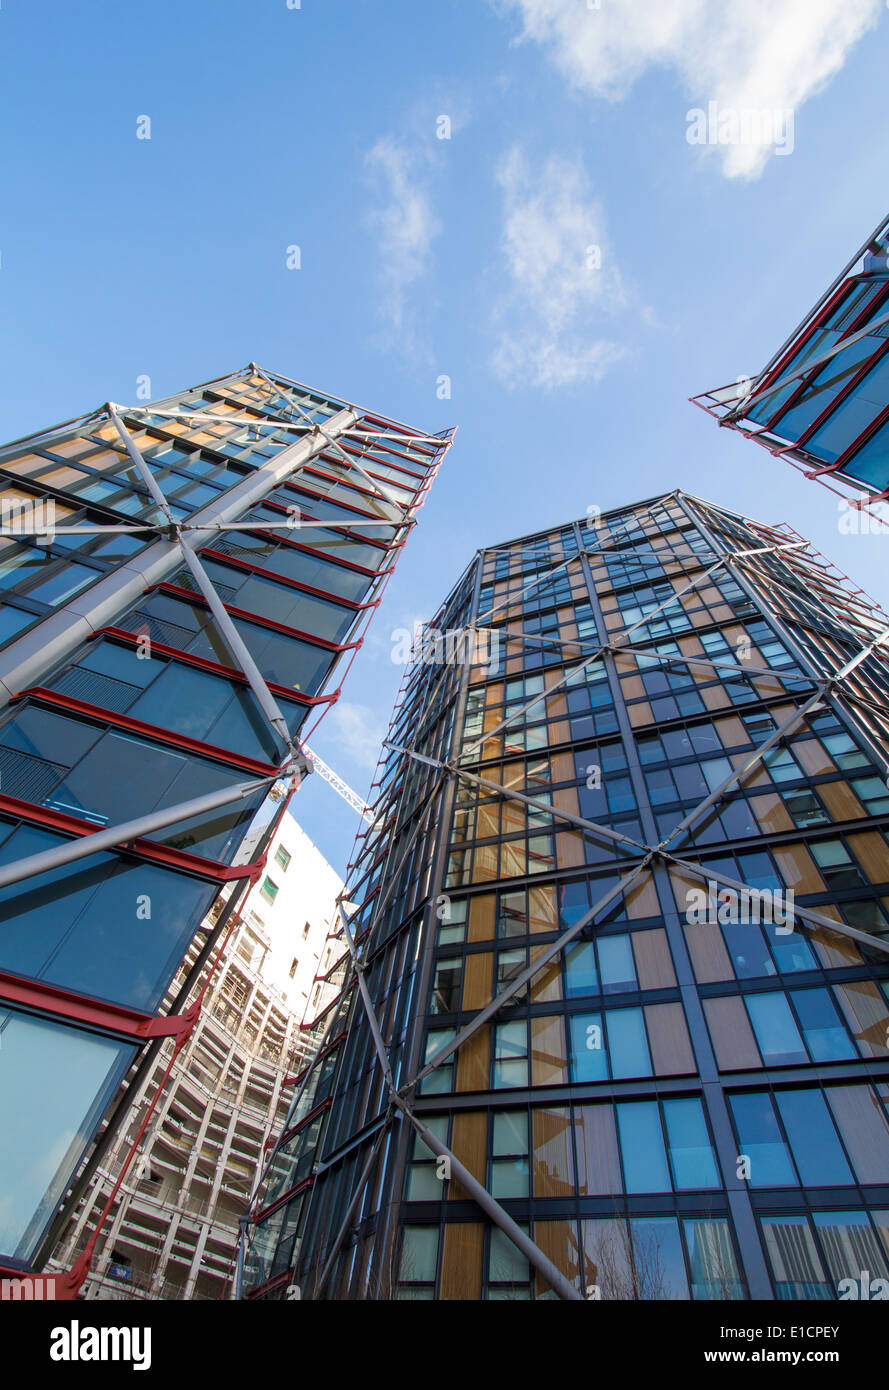 Image Of Neo Bankside On The South Bank In London Showing Three Stock Photo Royalty Free Image